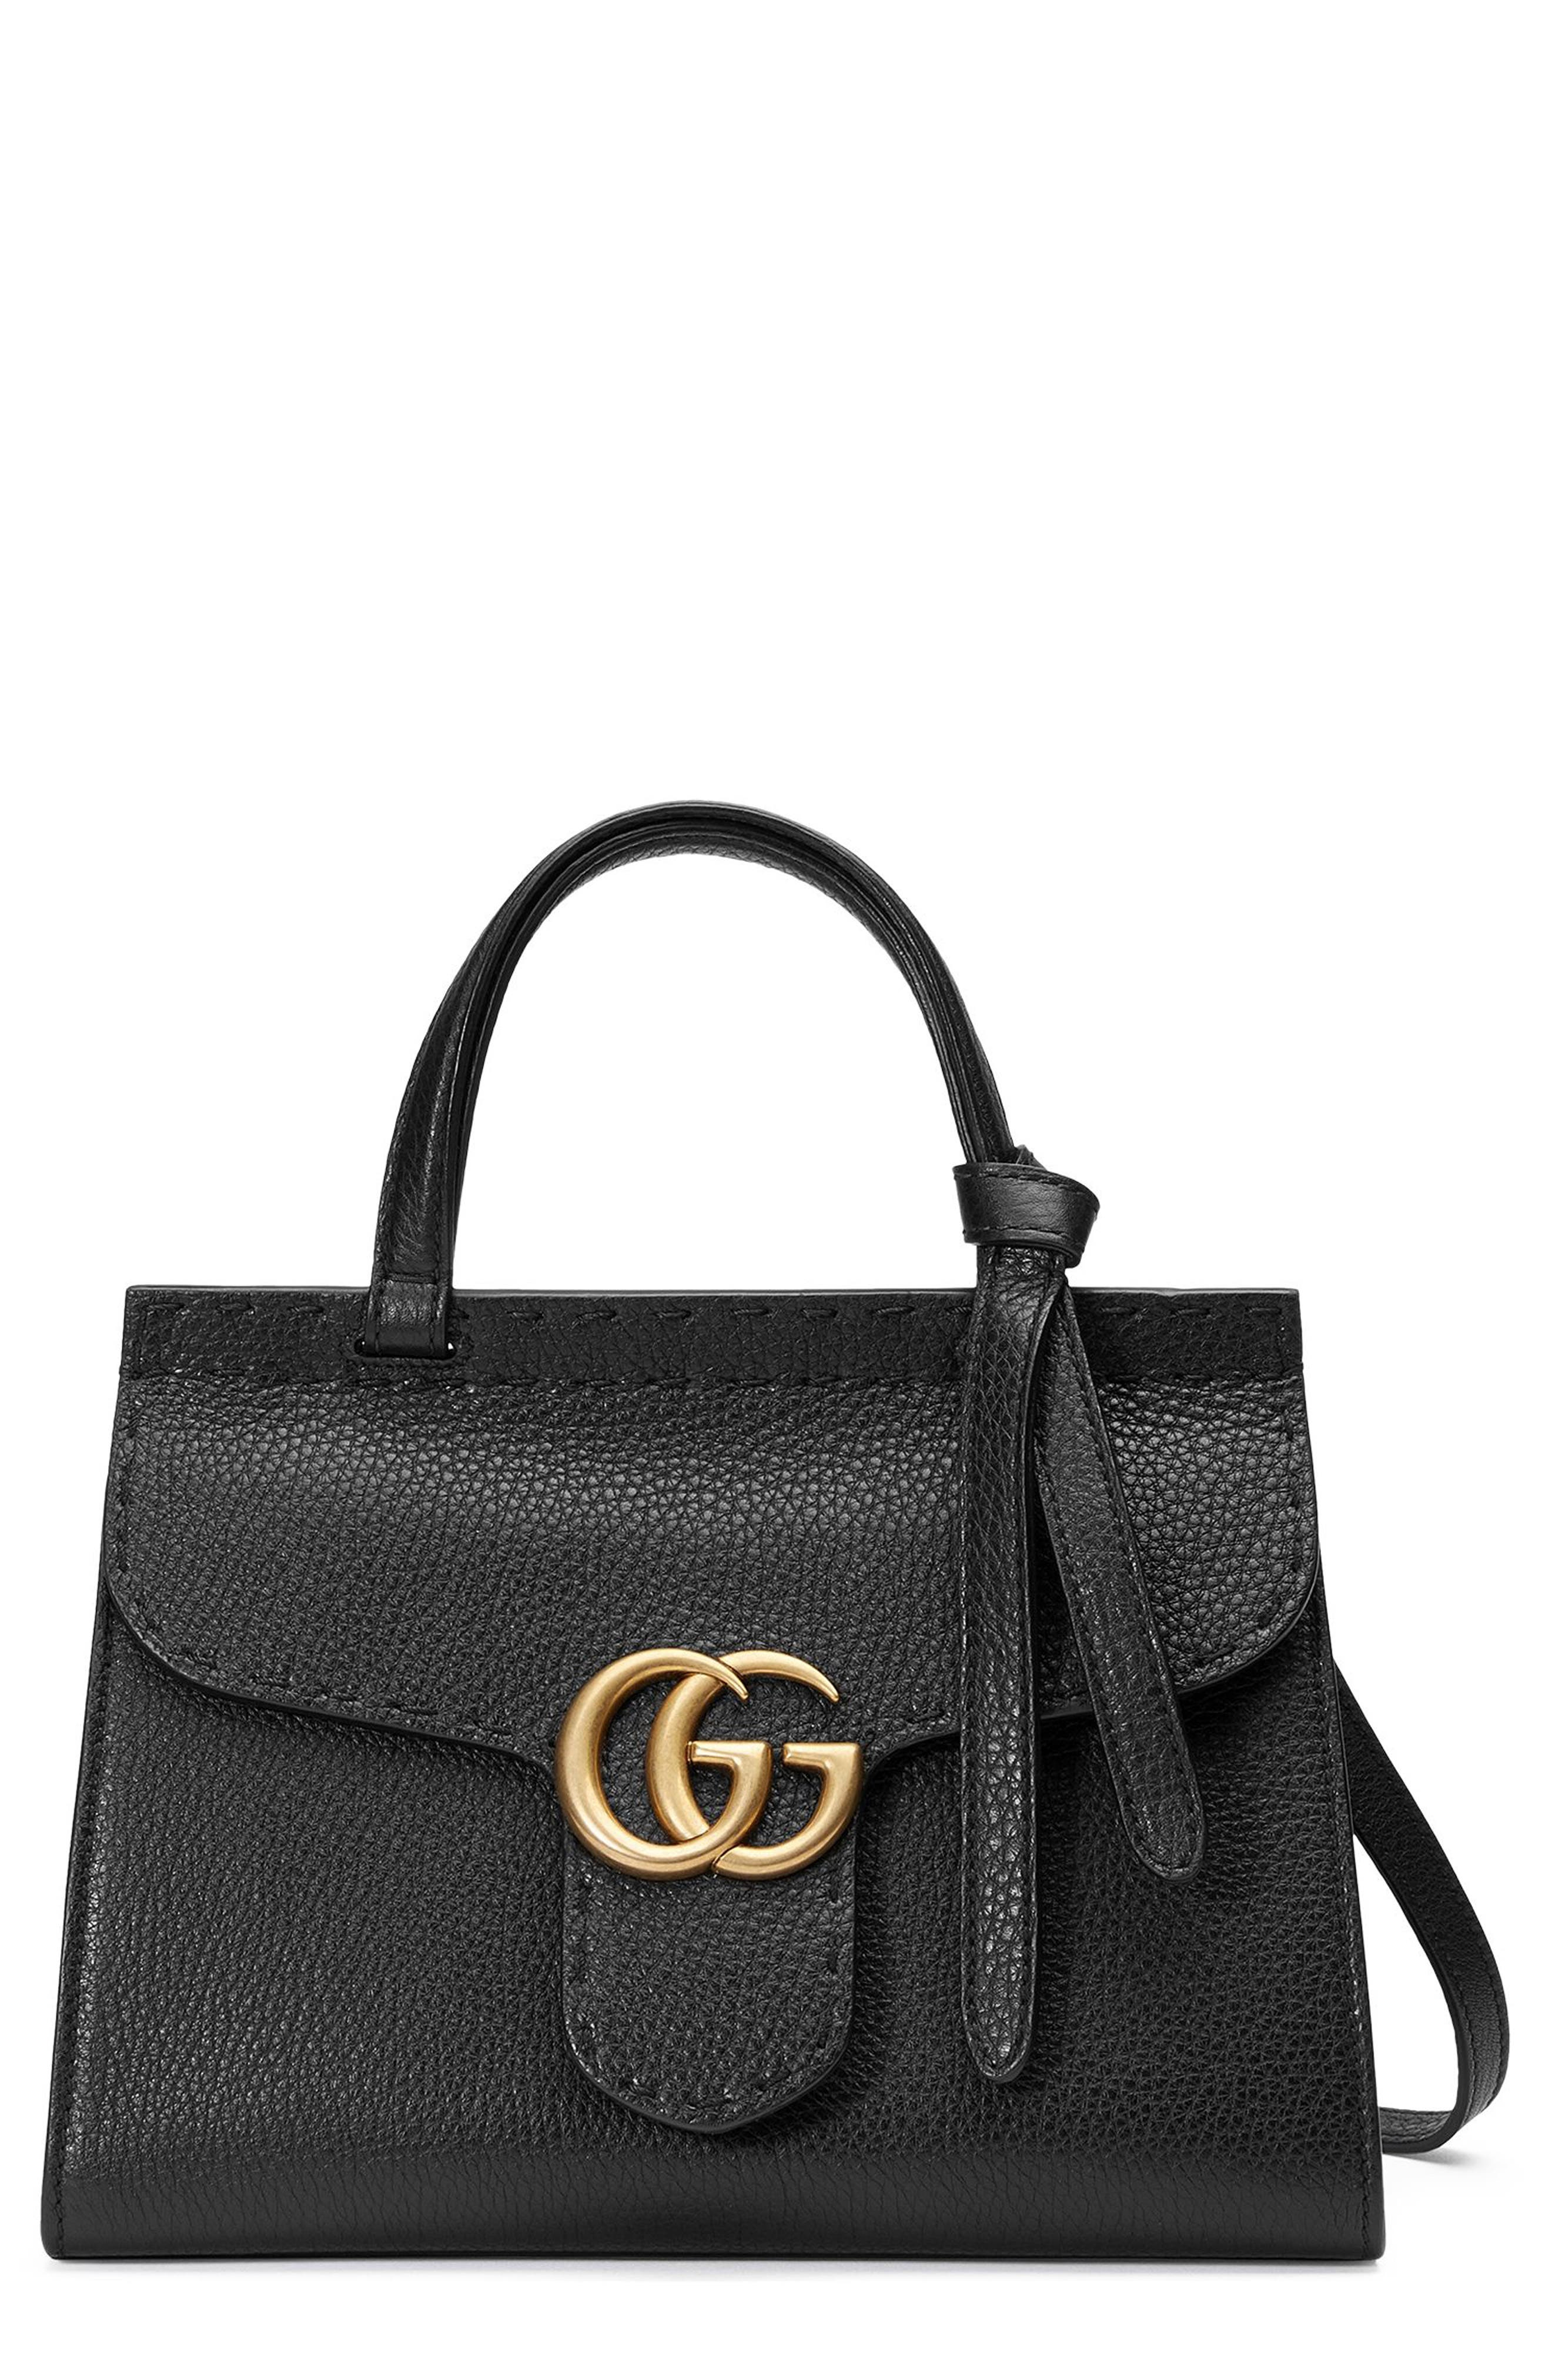 Gucci Small GG Marmont Top Handle Satchel